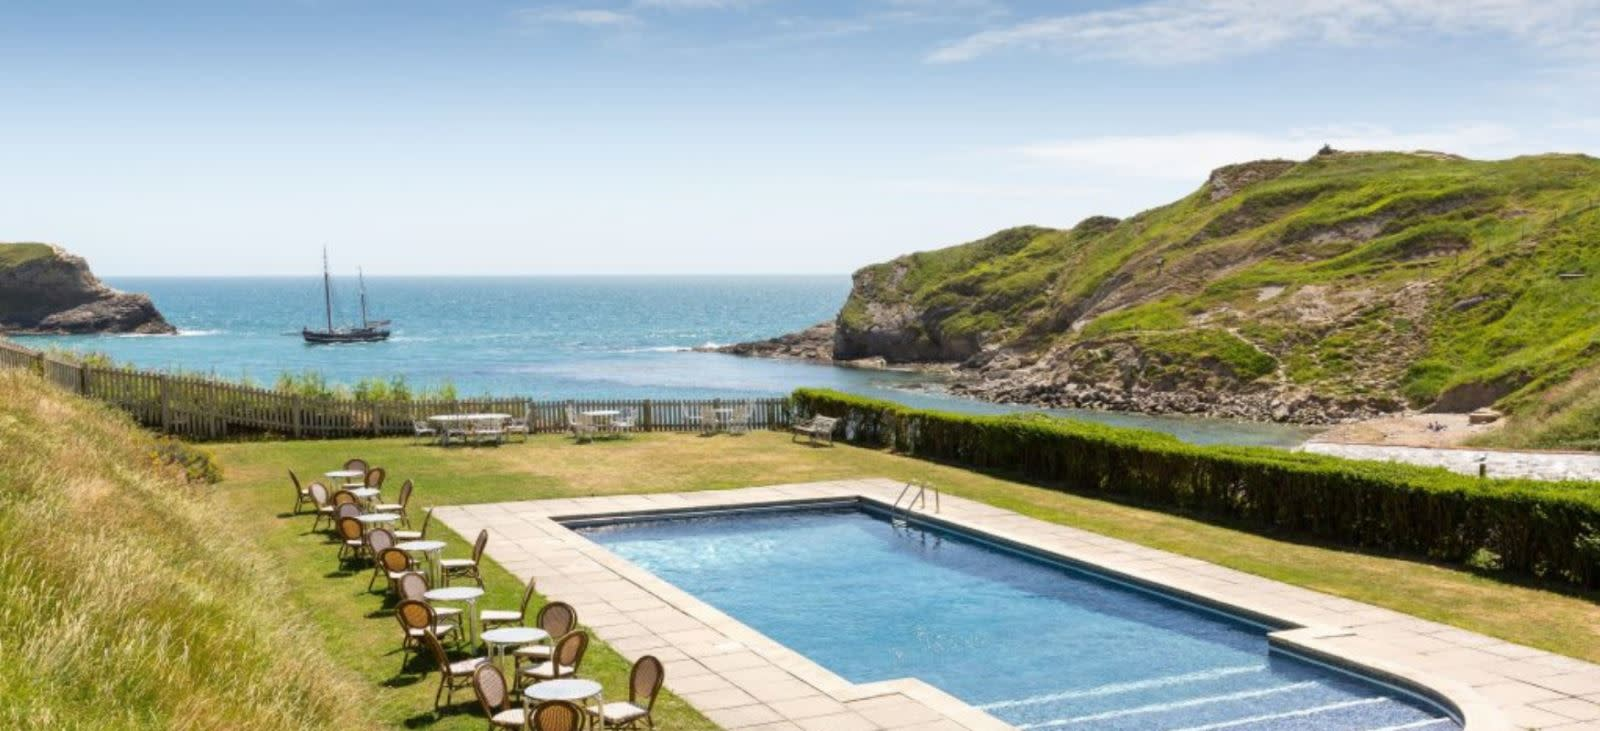 Outdoor swimming pool at Rudds of Lulworth, Dorset